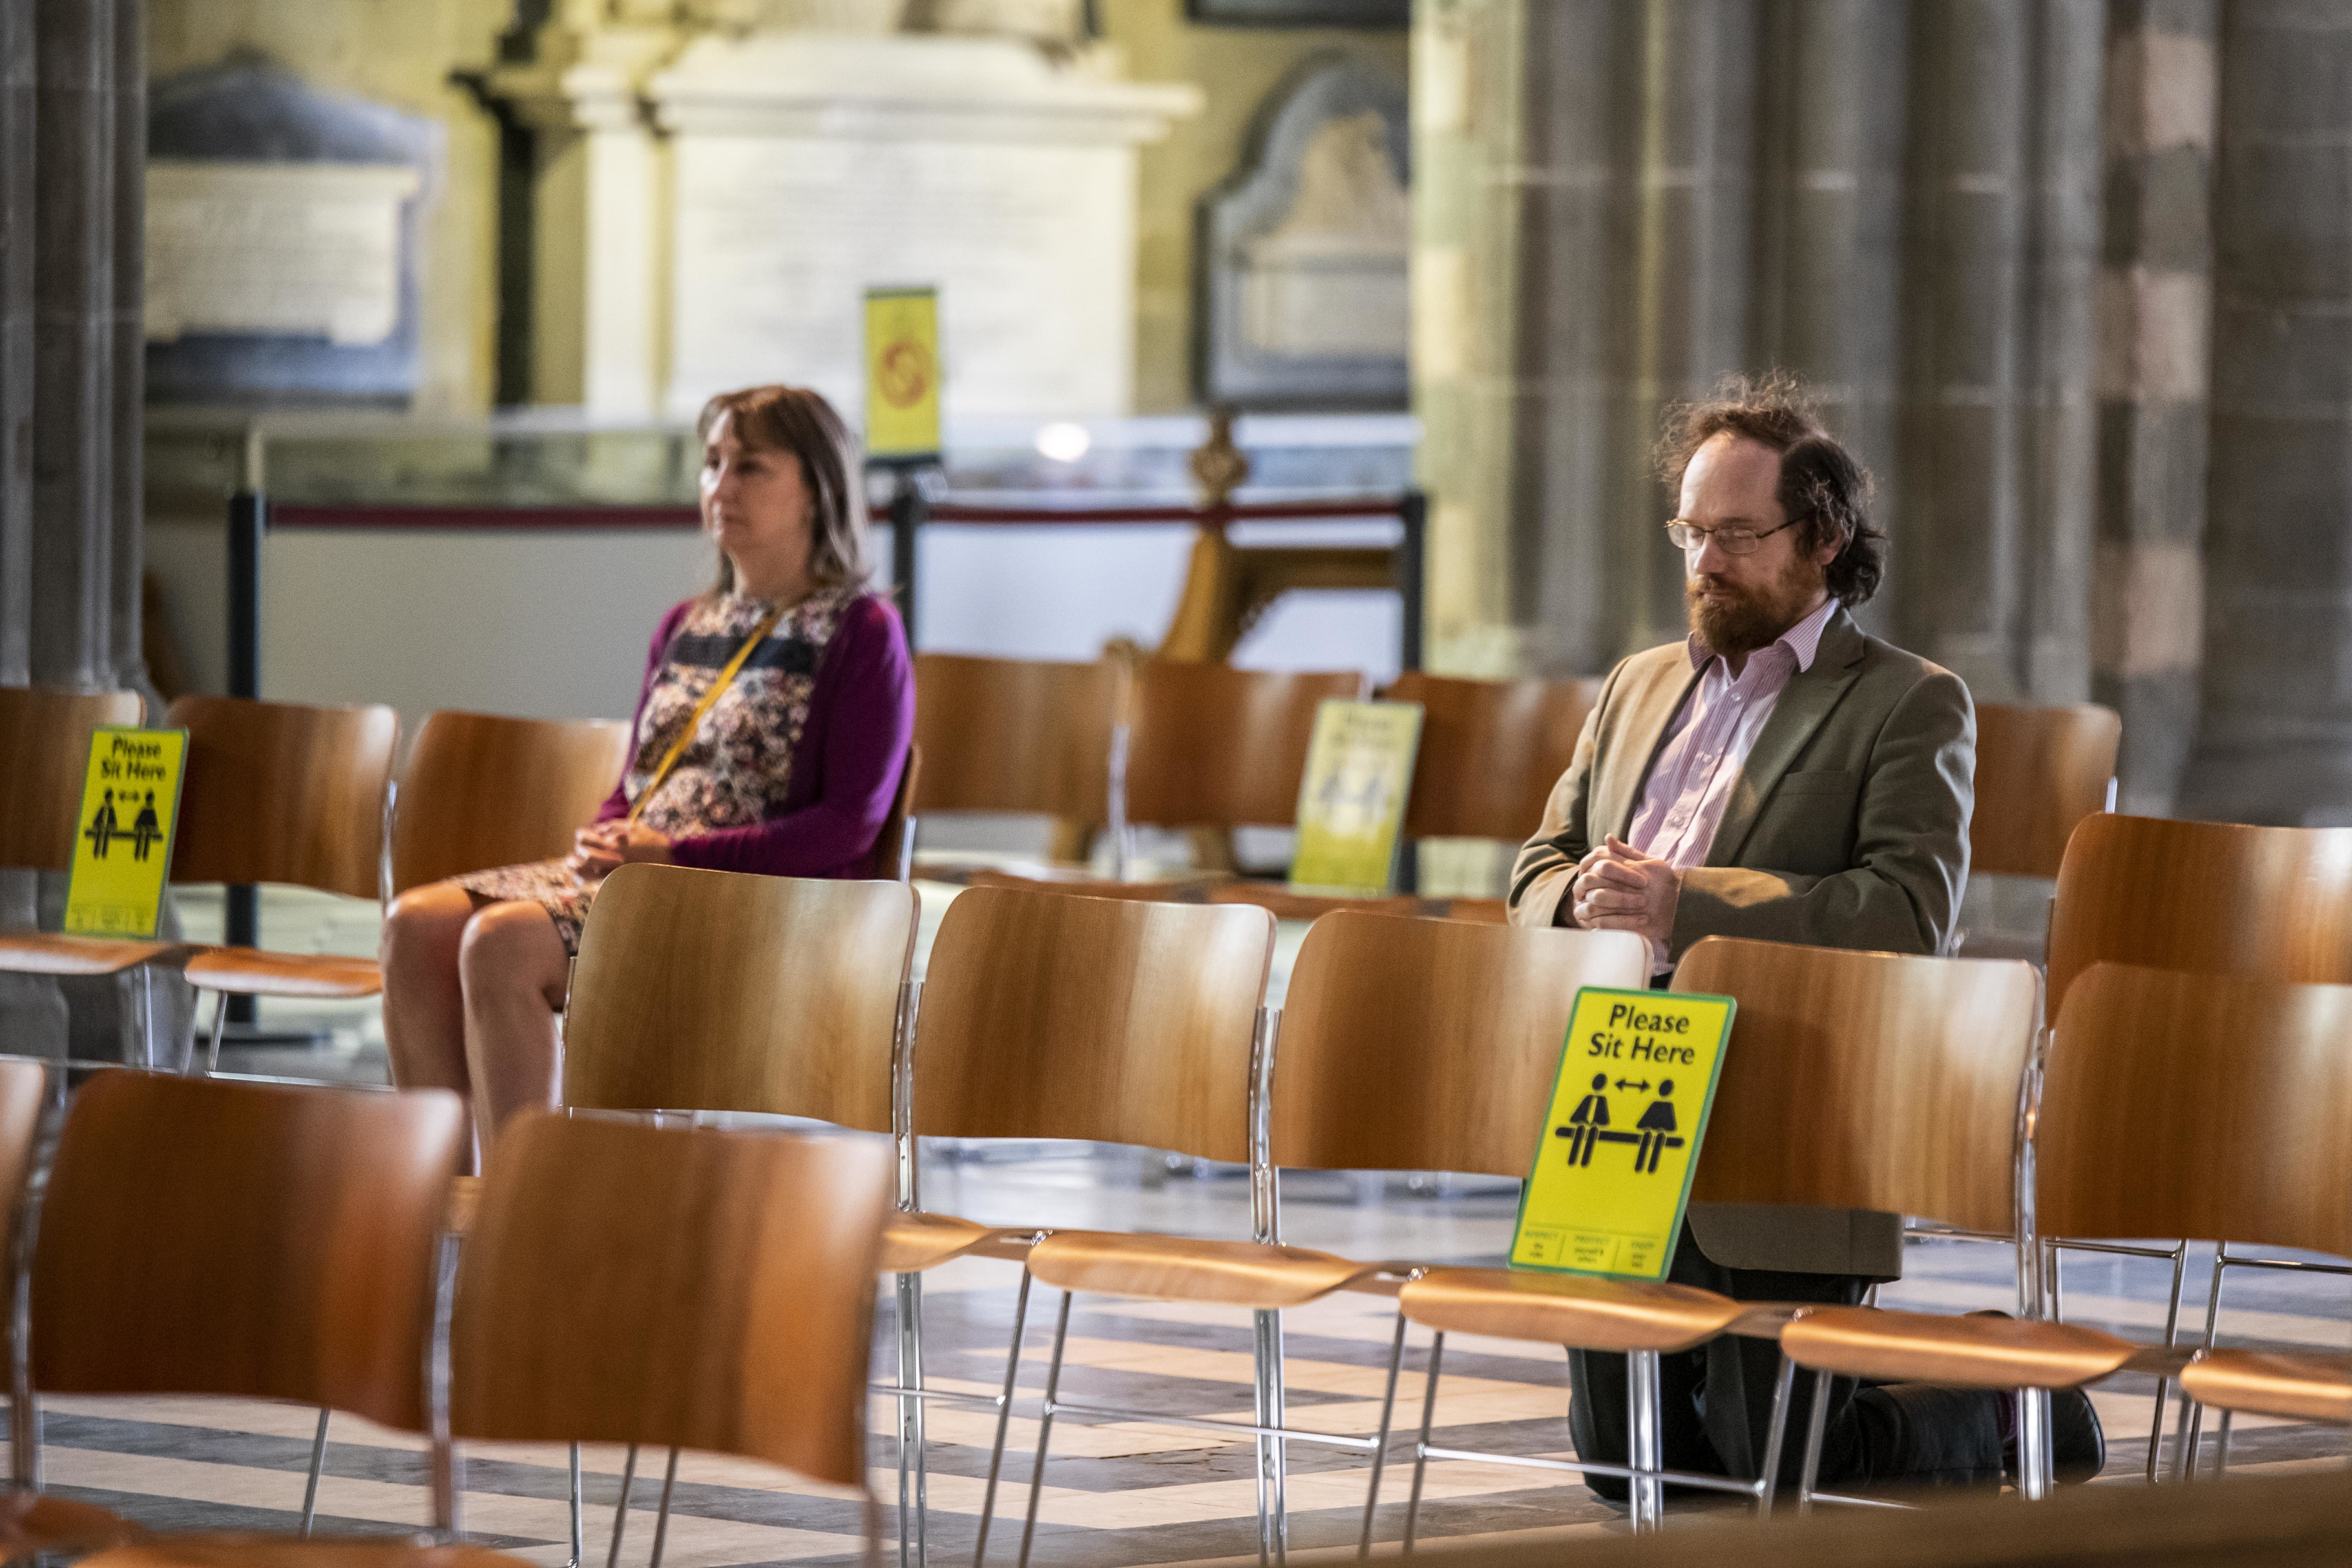 People sit in prayer in the nave of Worcester Cathedral in Worcester, Worcestershire, as it opens for the first time since the UK entered lockdown to reduce the spread of coronavirus.